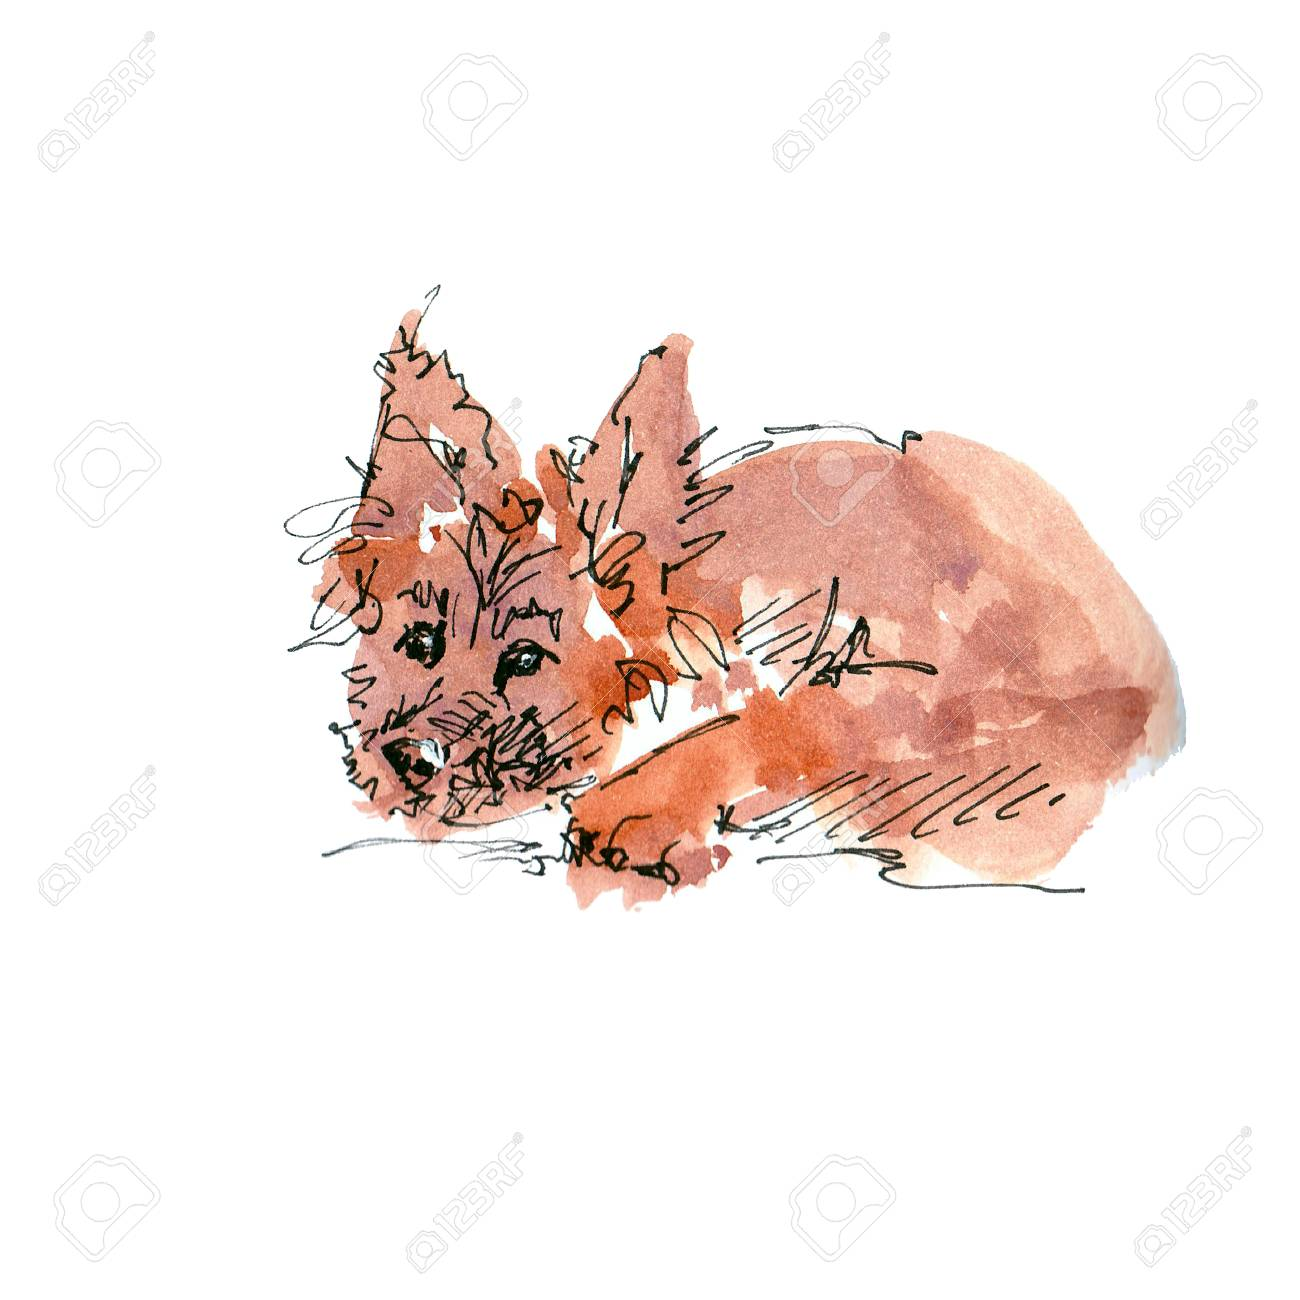 Watercolor illustration of German Shepherd dog sketch isolated on white - 109991153